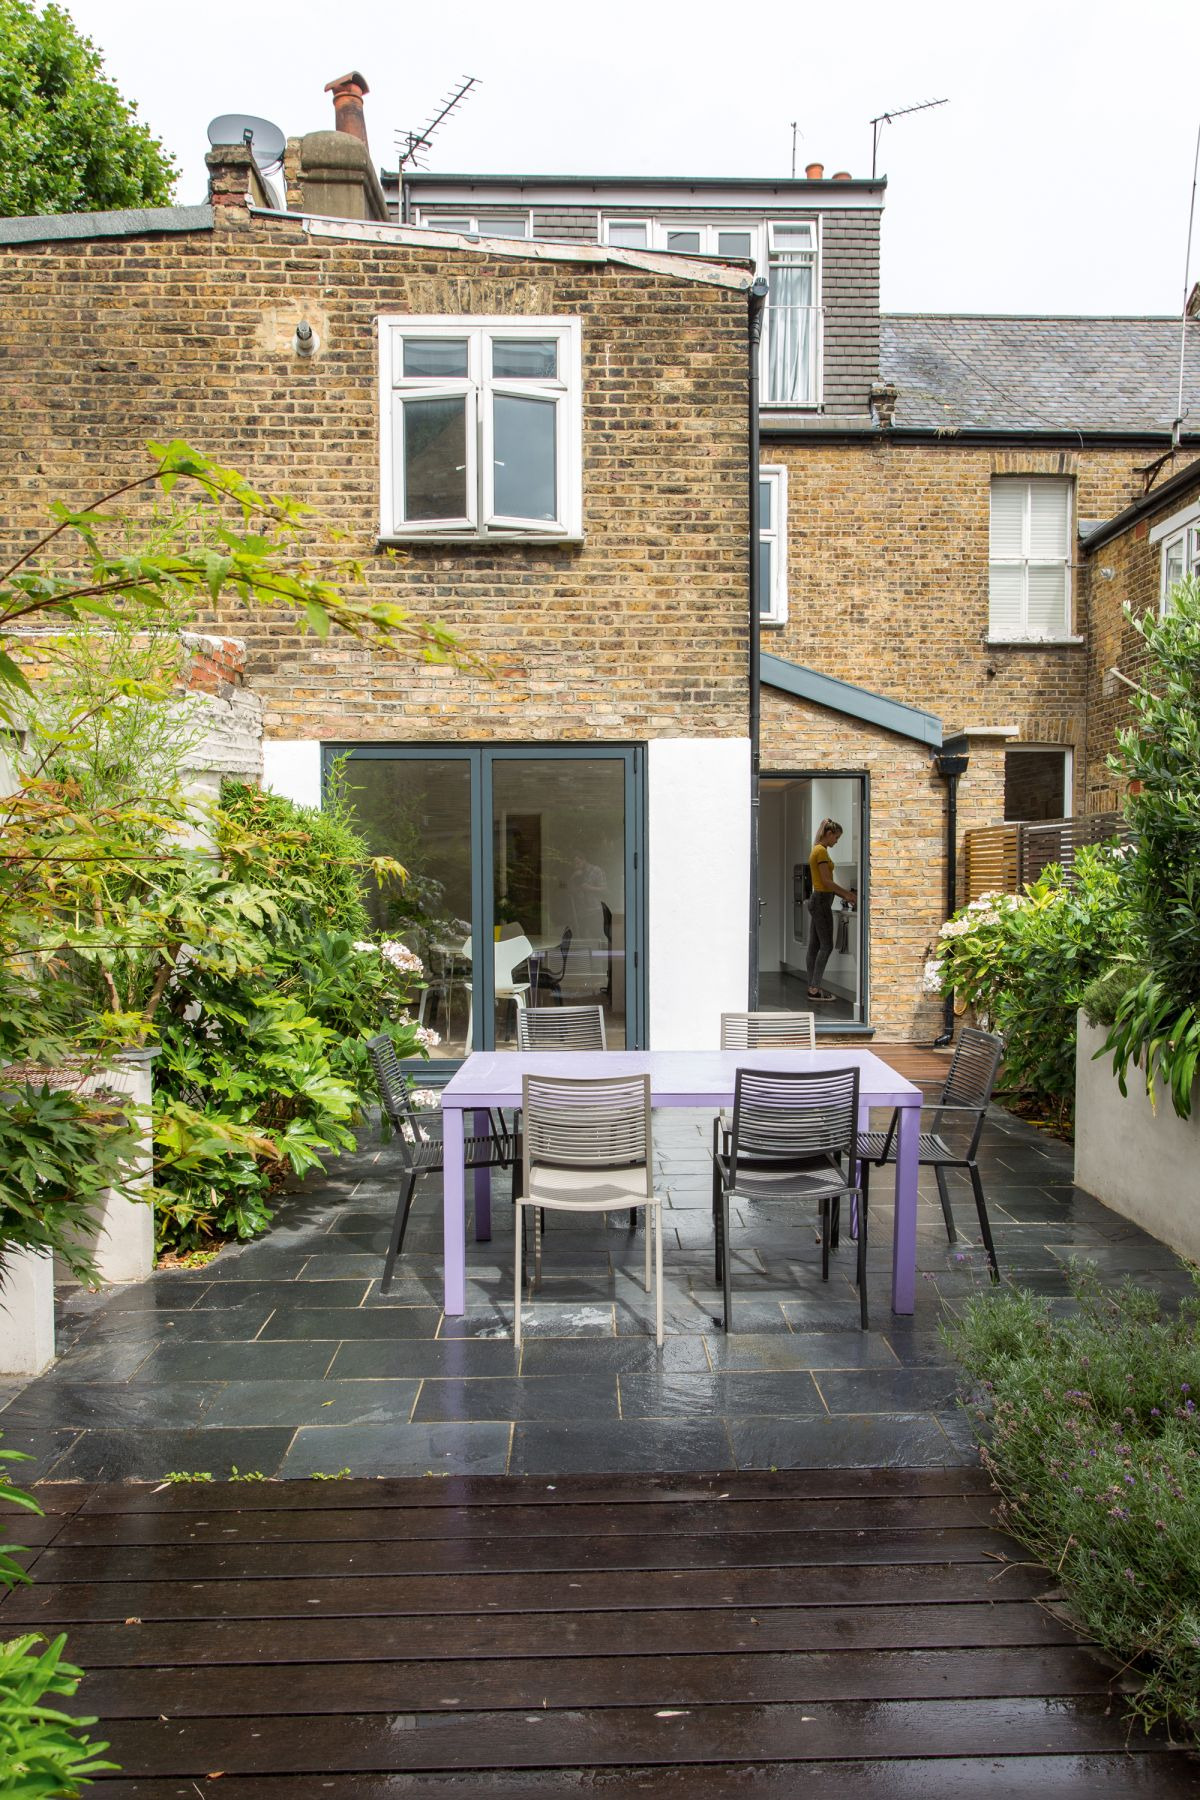 Build A House for Under 50k Lovely Extending for Under £50 000 12 top Tips for Your Home